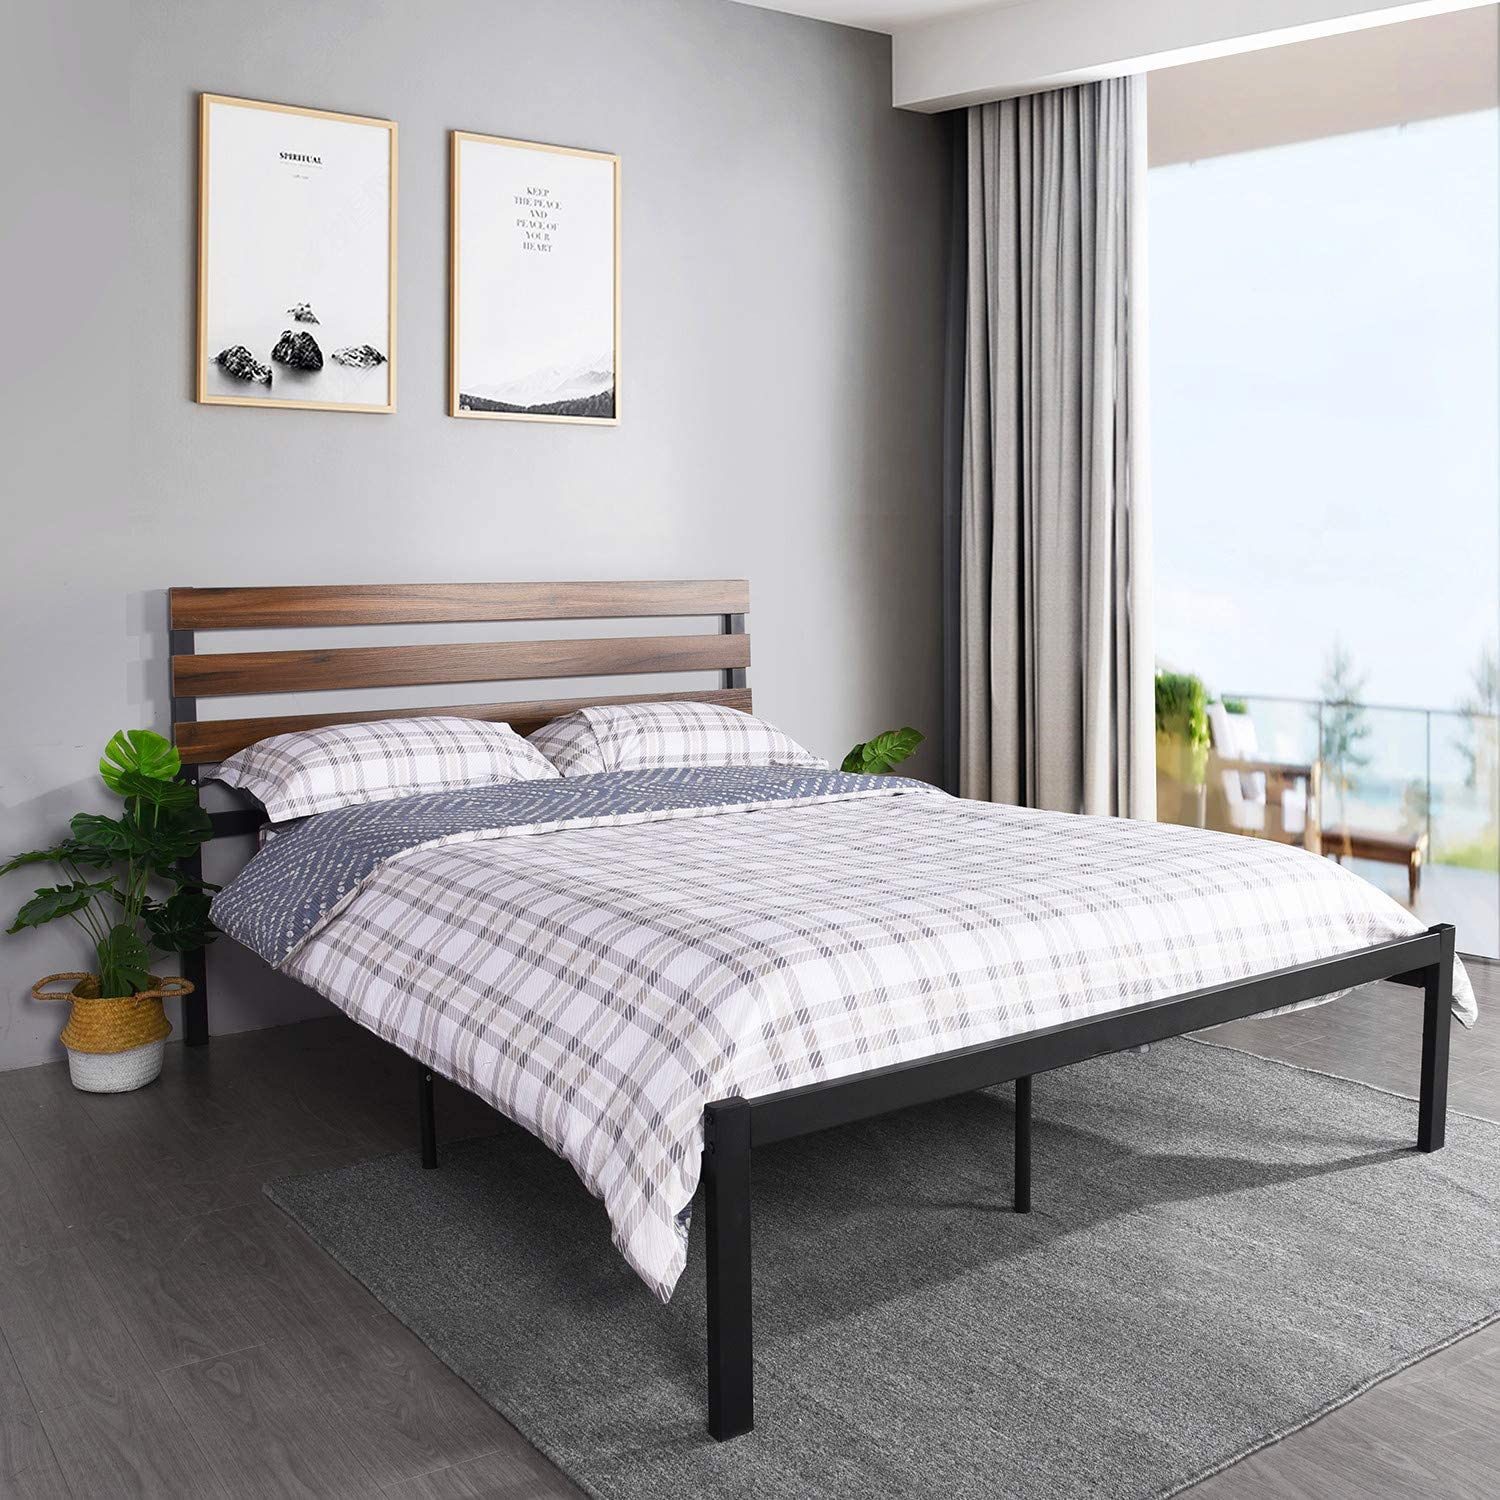 Black-1, Double Bed Platform Double Metal Bed Frame Day Bed with Headboard